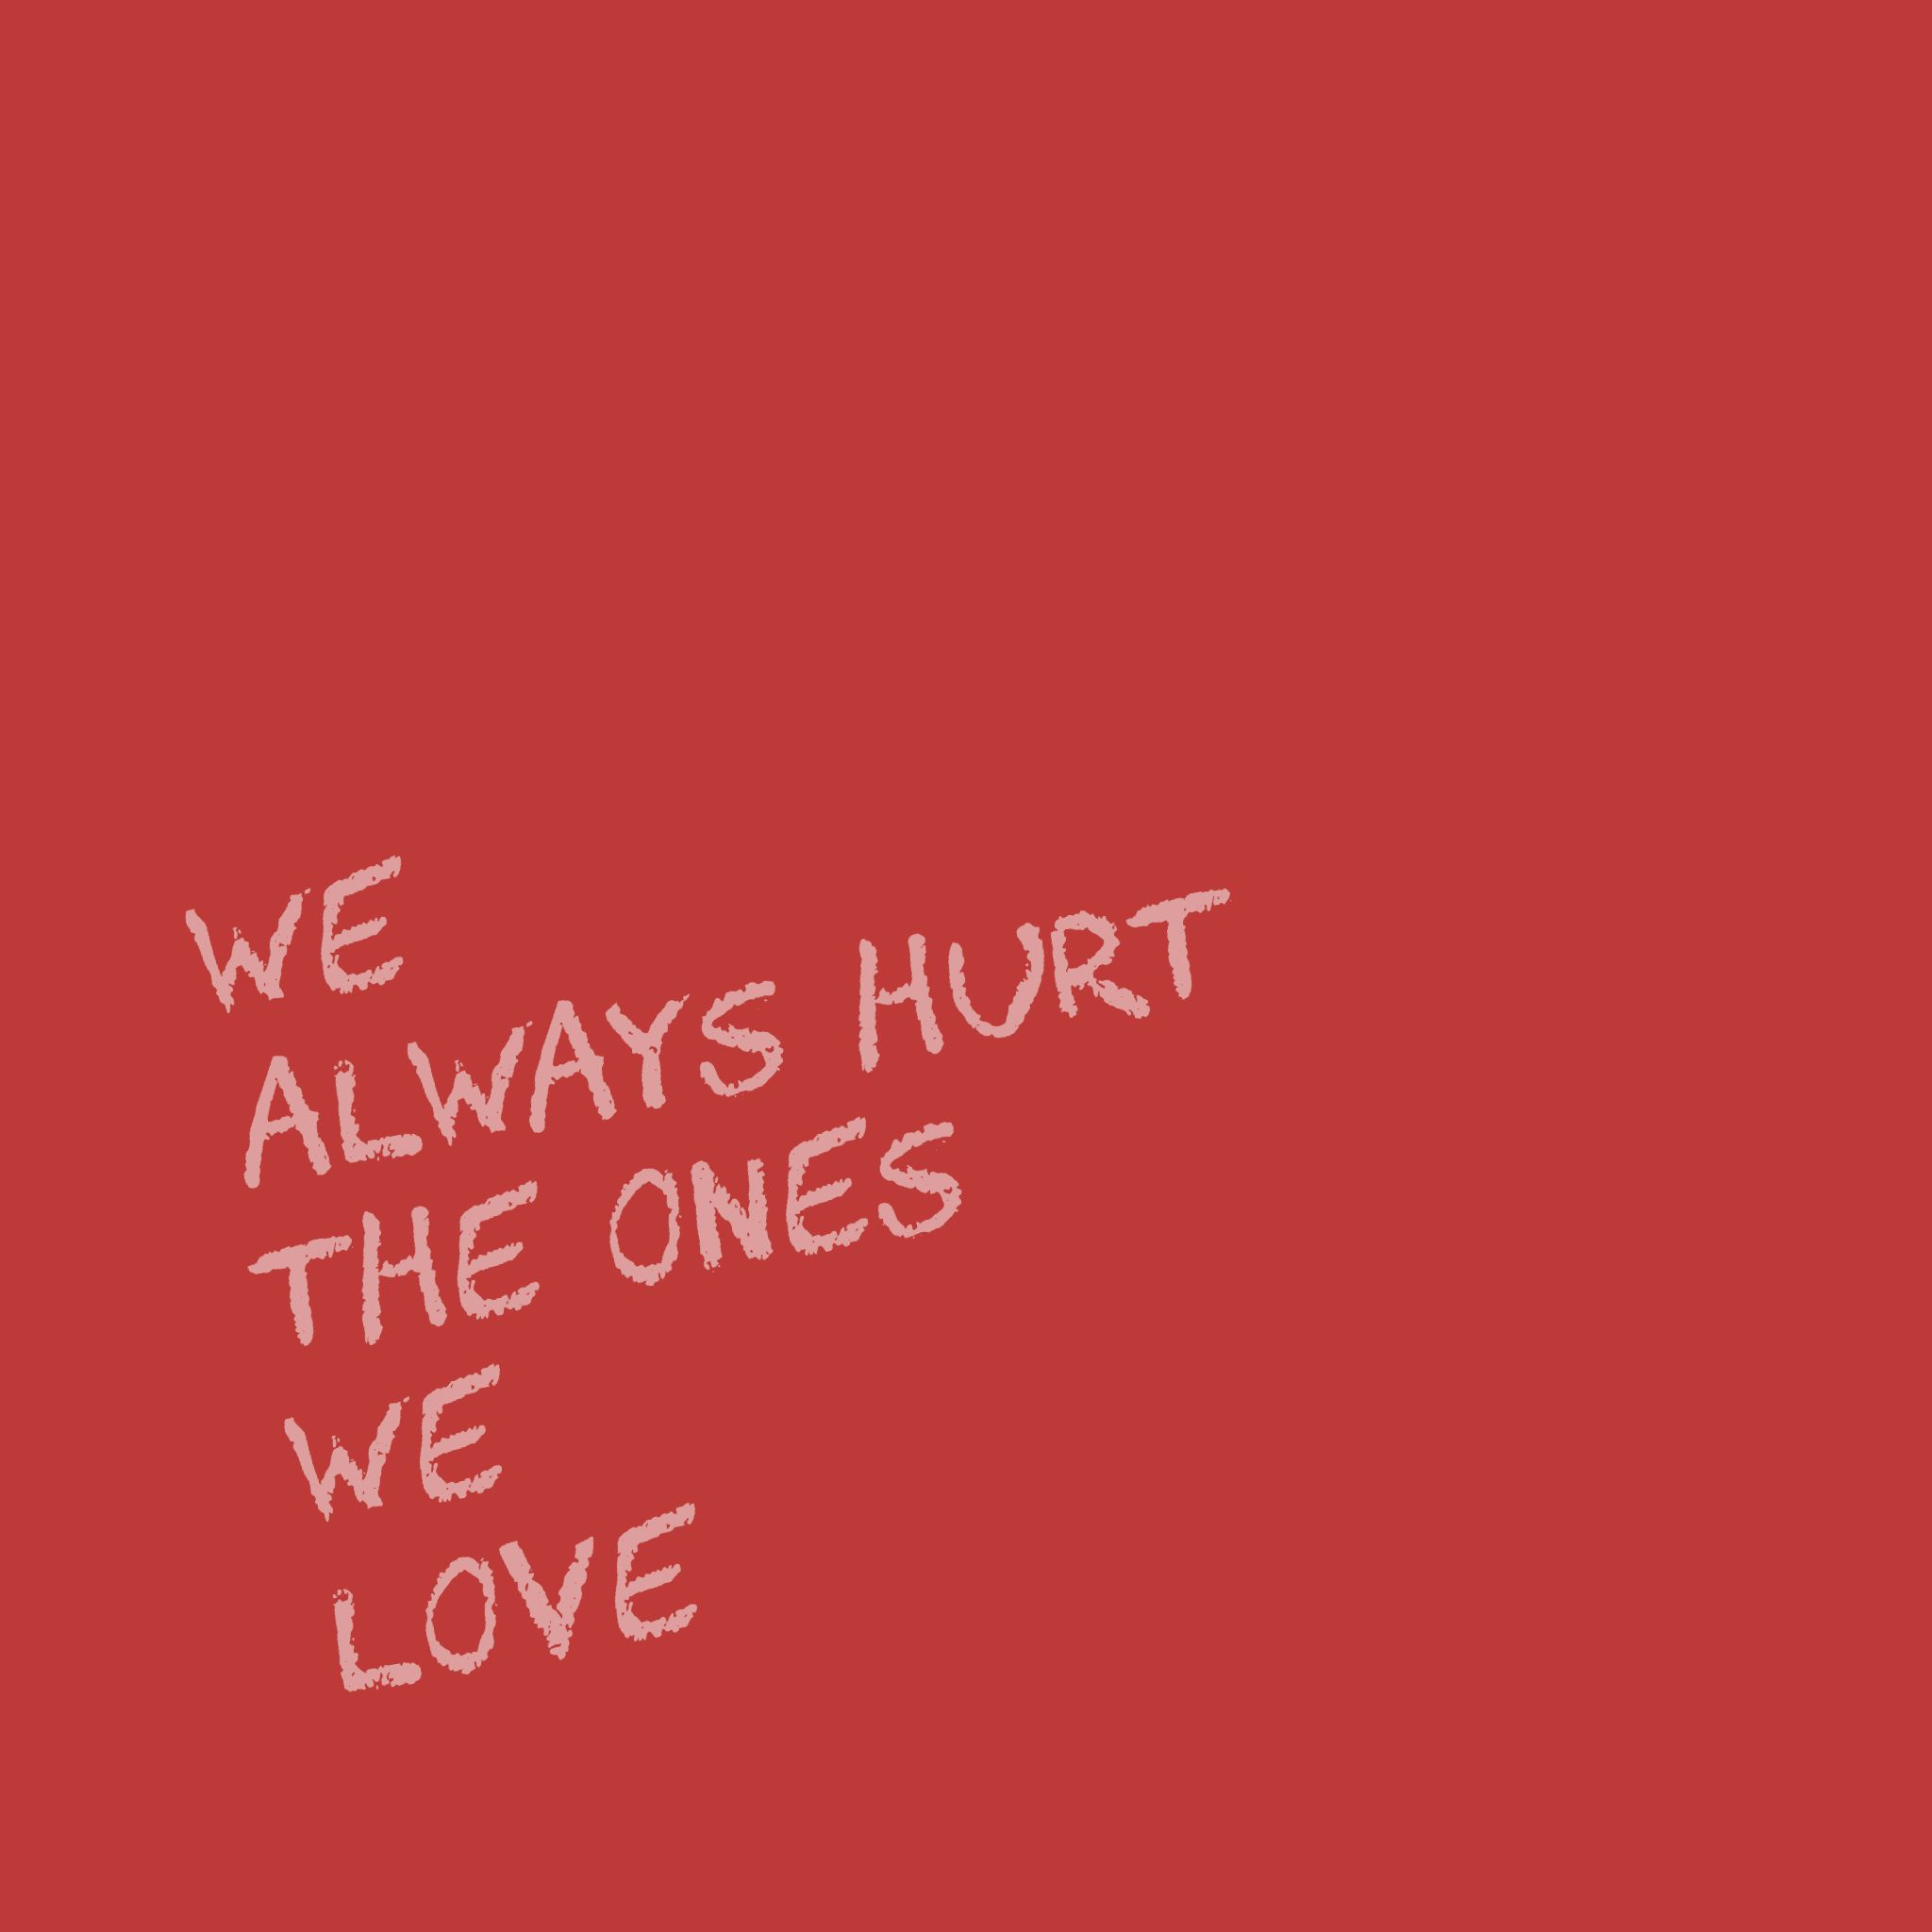 Red Aesthetic We Always Hurt The Ones We Love The Most Tw